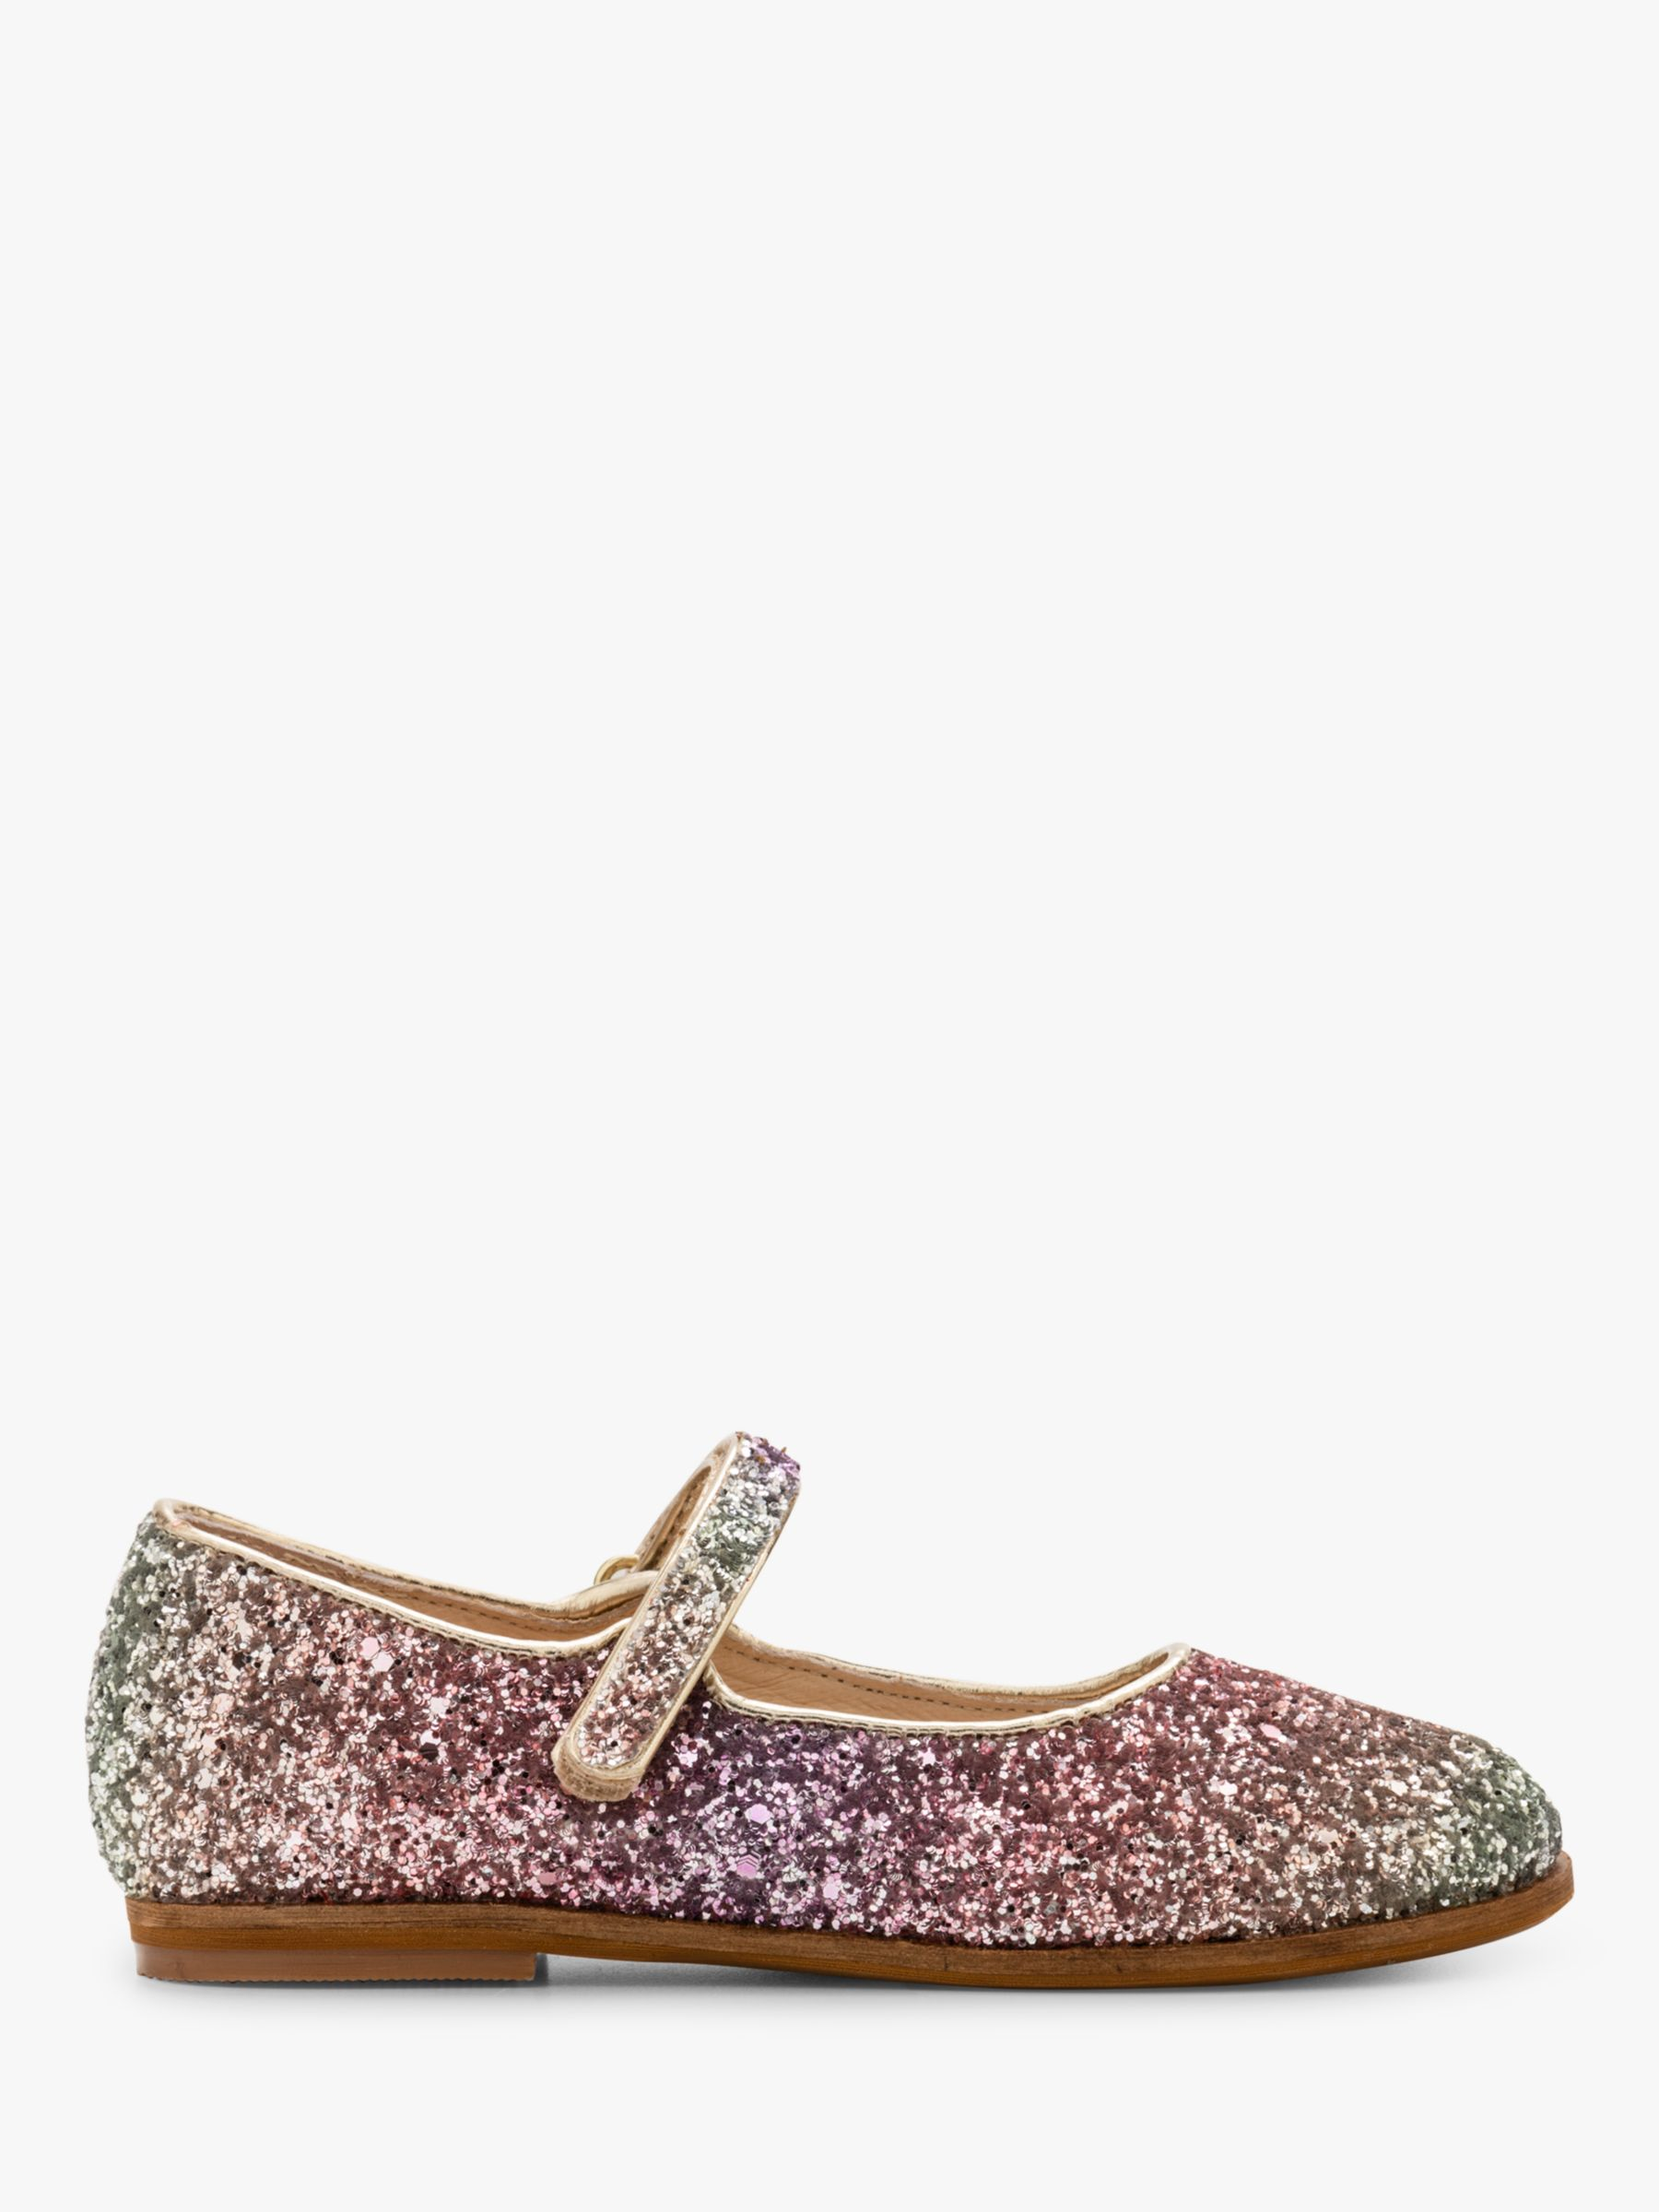 Mini Boden Mini Boden Children's Party Glitter Mary Jane Shoes, Provence Dusty Pink